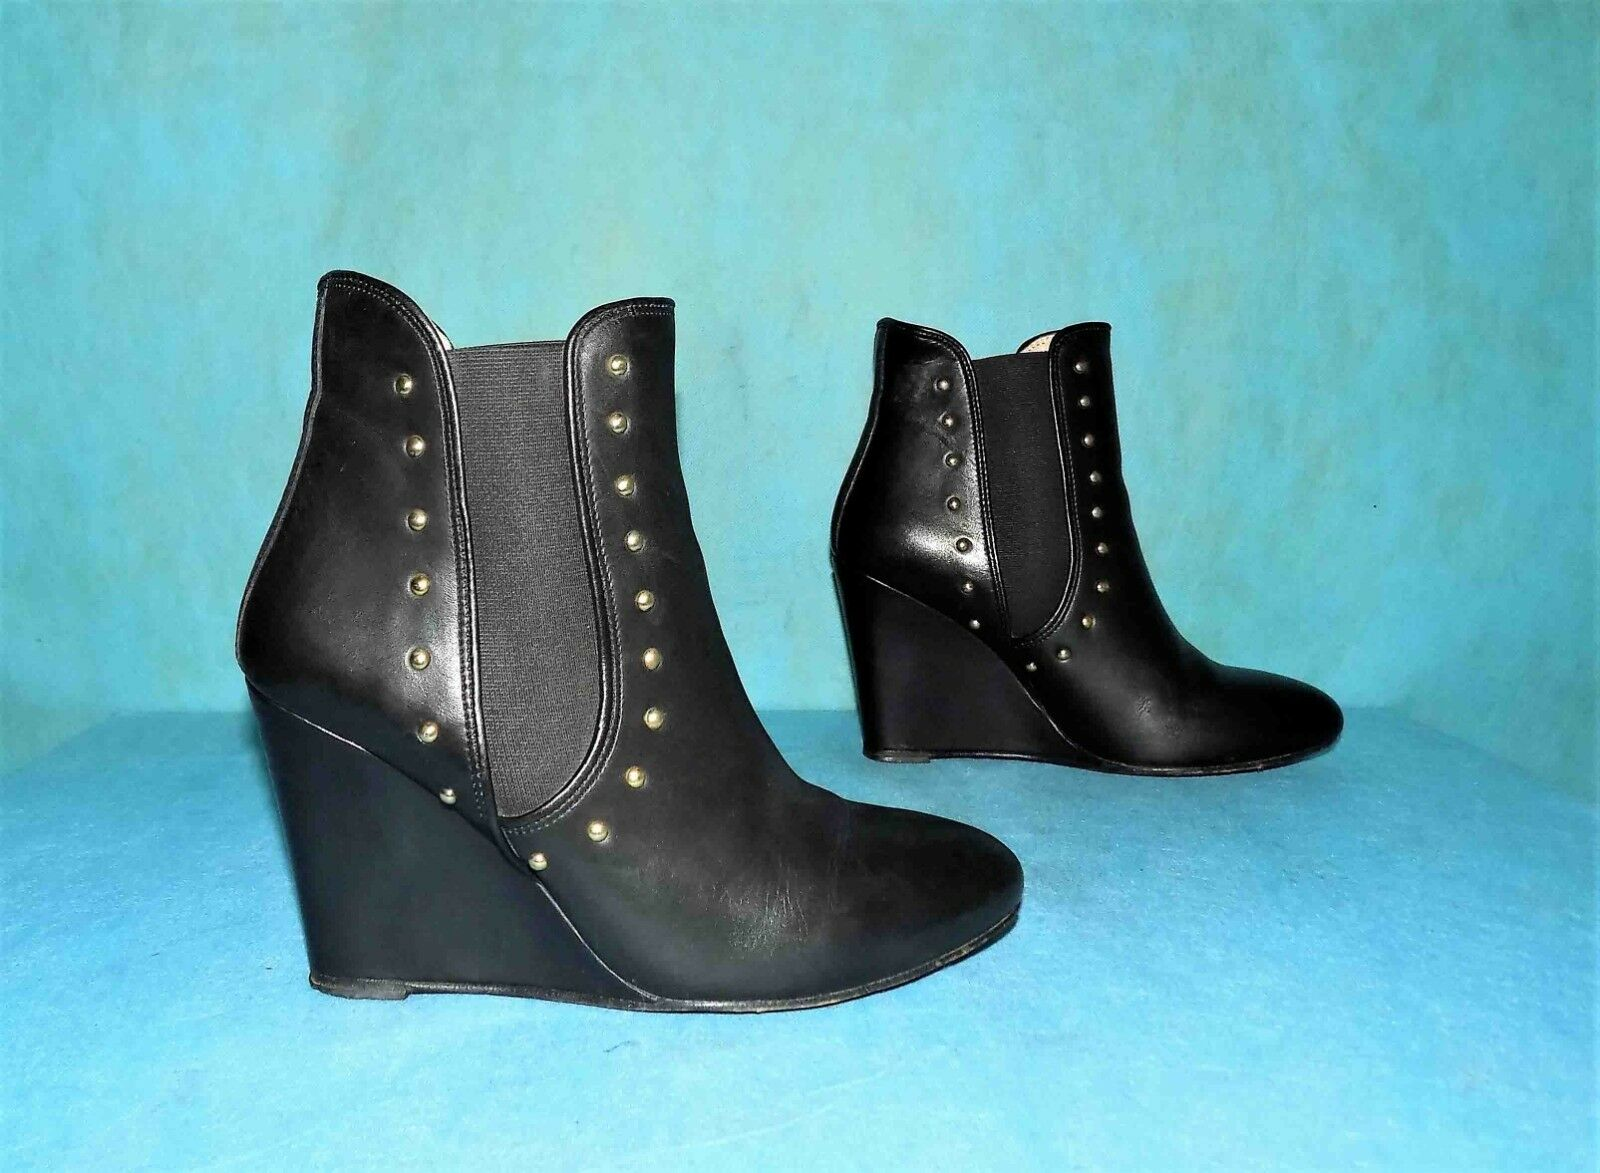 Boots booties wedge PABLO GERARD DAREL black leather p 40 fr very good condition